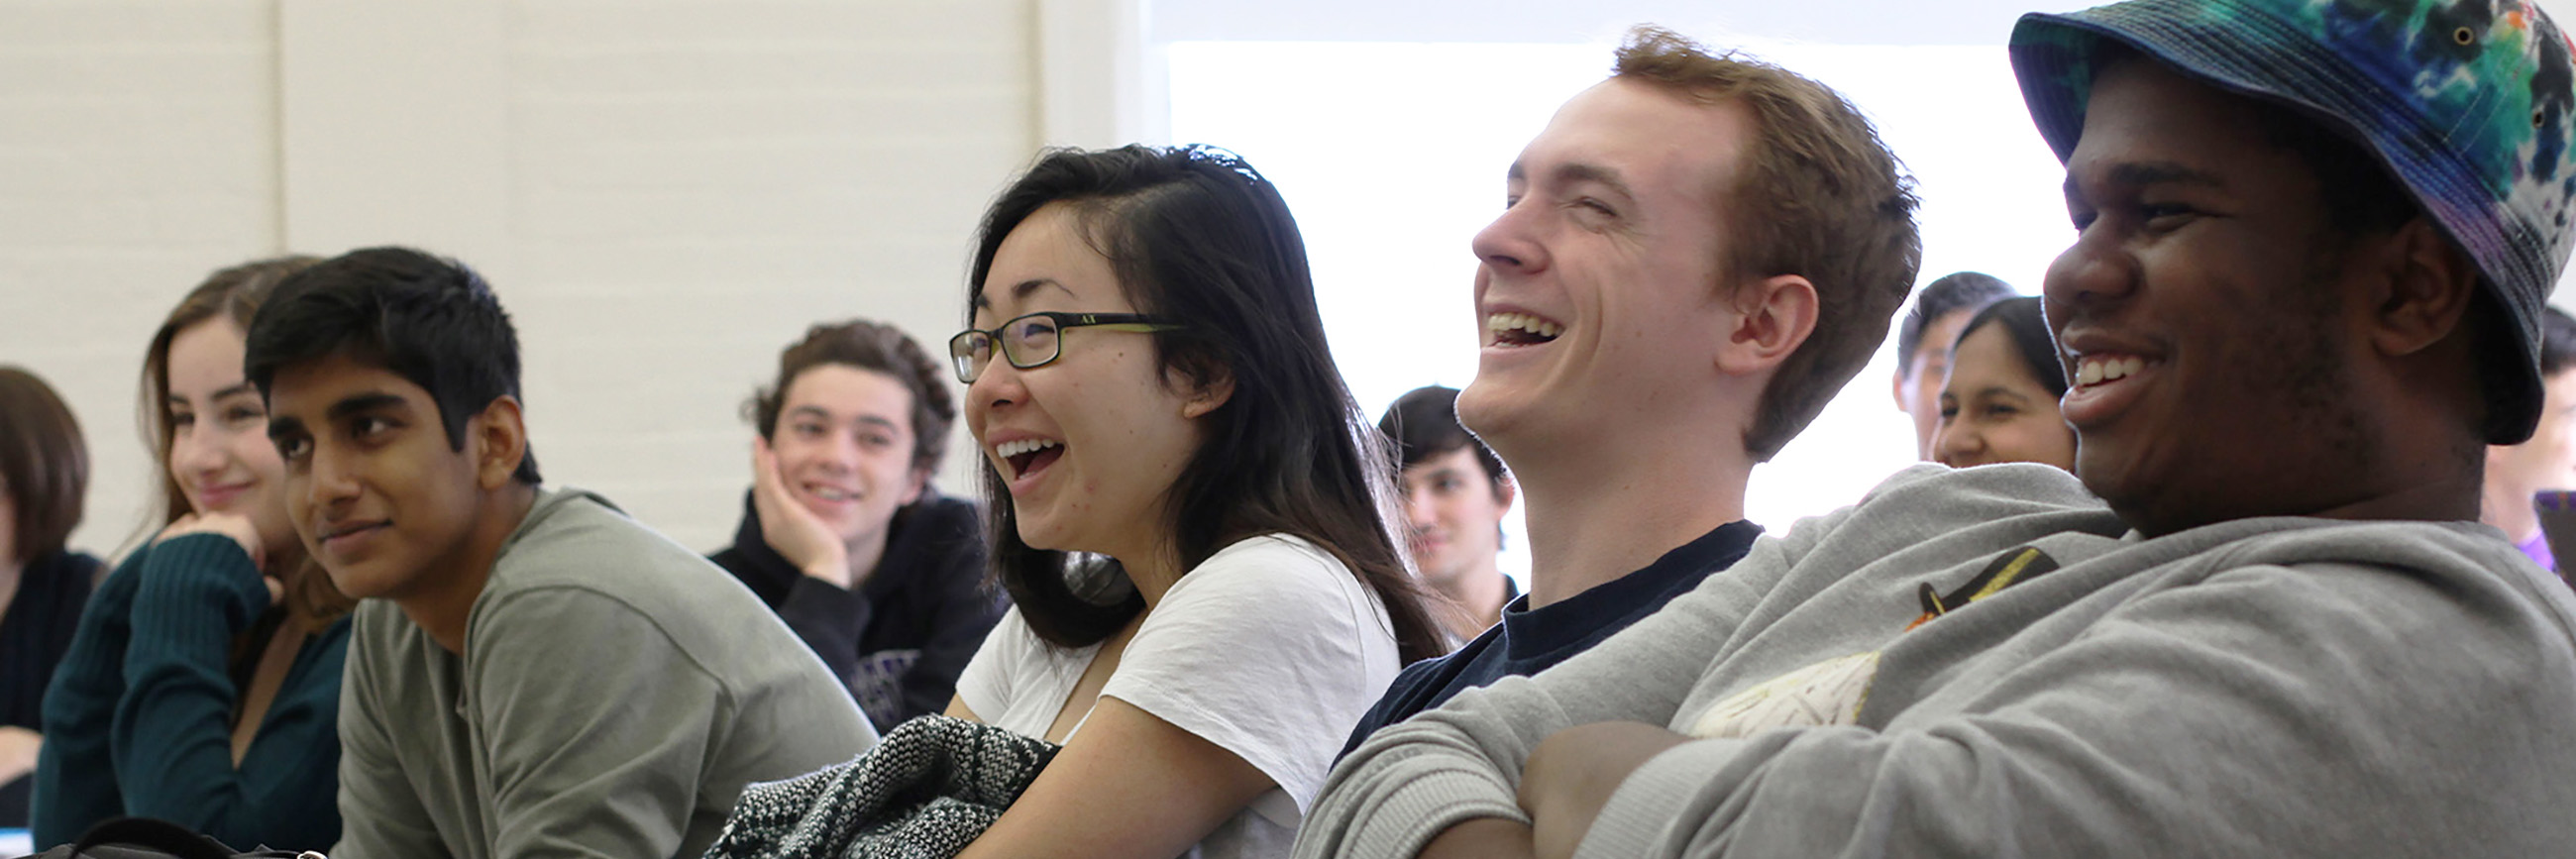 Students sitting in classroom laughing together.